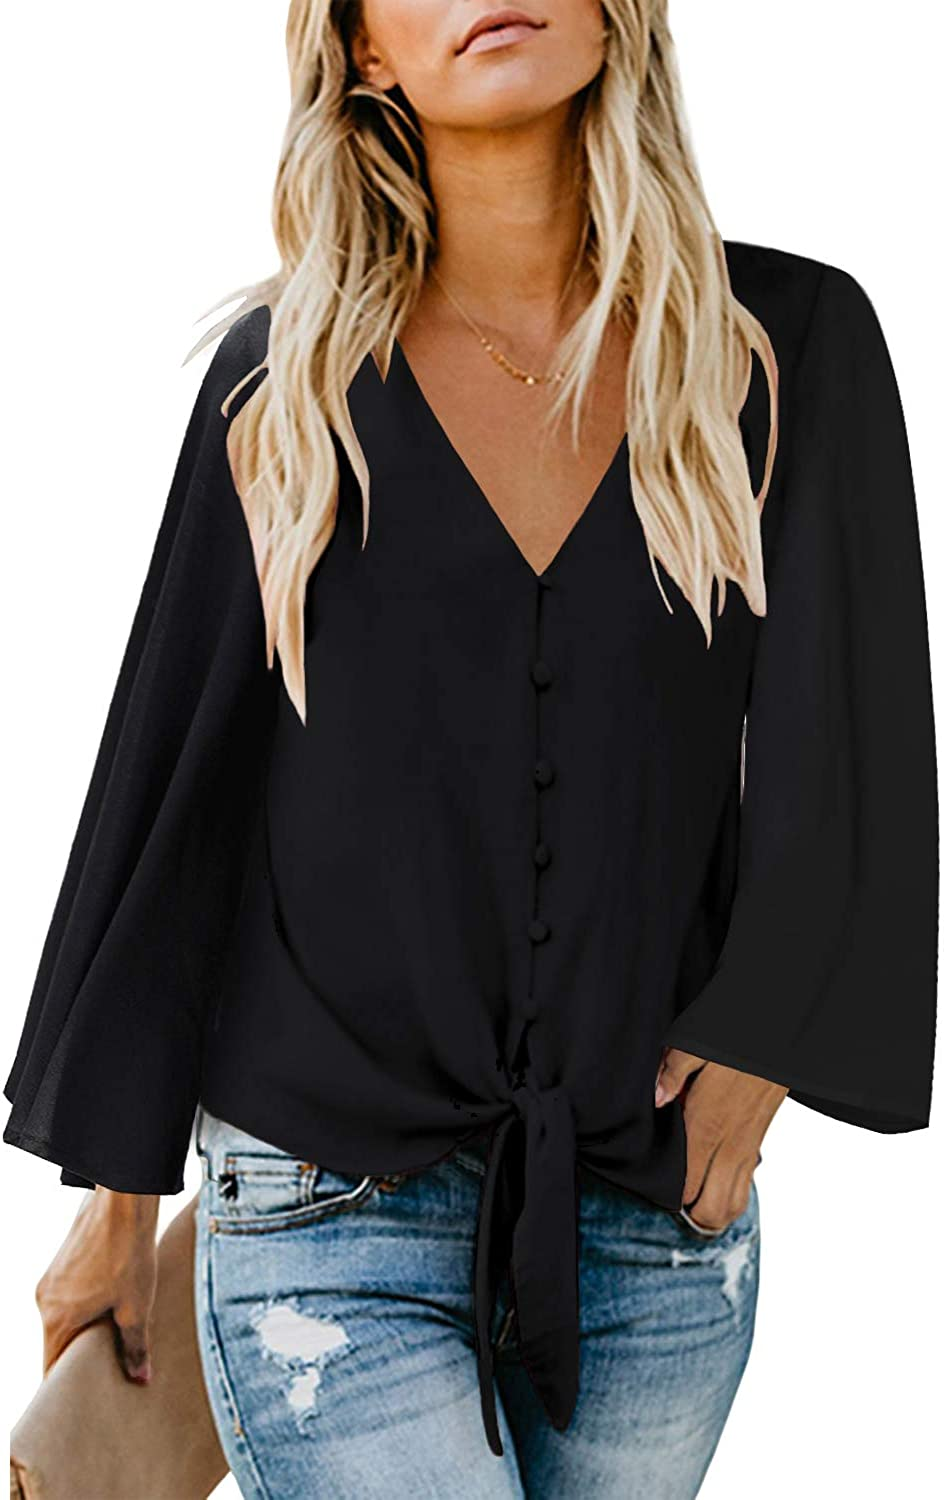 luvamia Womens V Neck Tops Ruffle 3//4 Sleeve Tie Knot Blouses Button Down Shirts